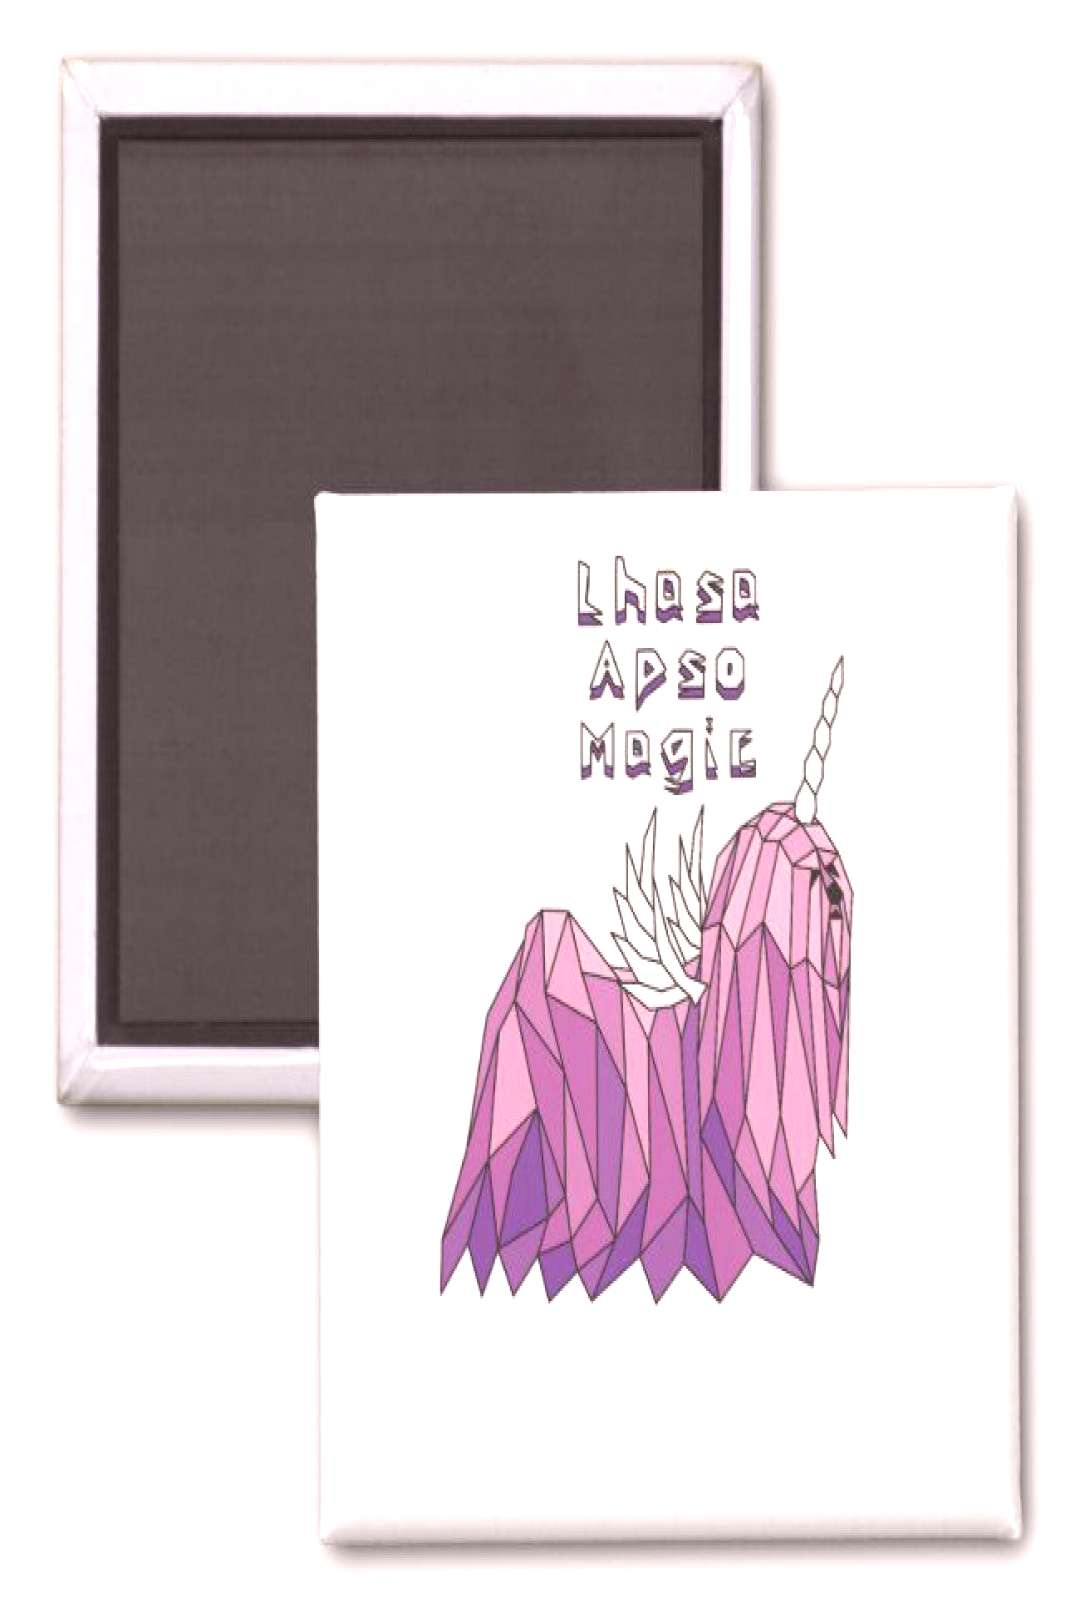 Lhasa Apso Magic Unicorn Pegasus Magnet ,